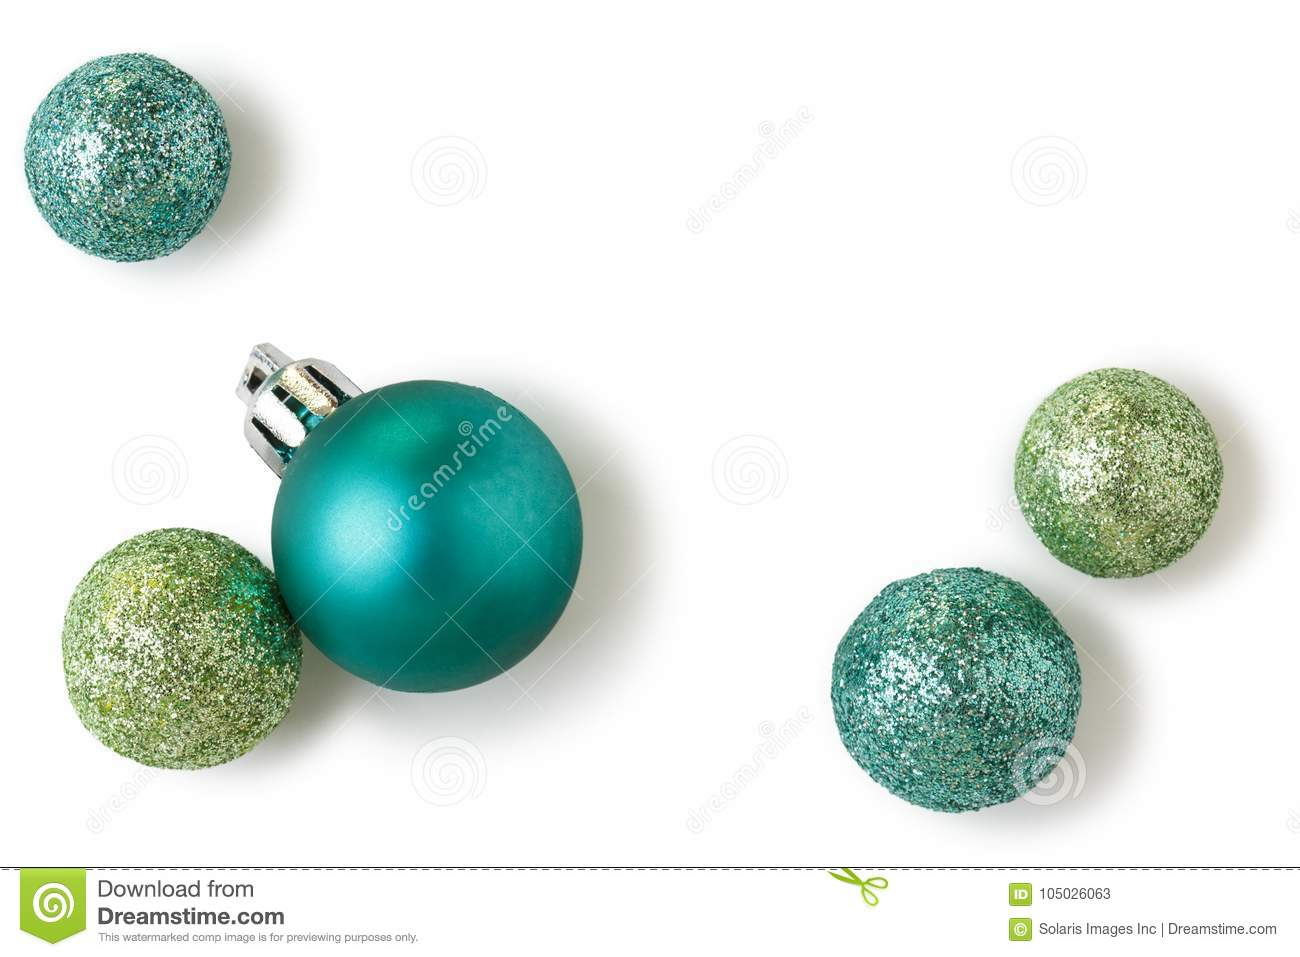 Beautiful, bright, modern Christmas holiday ornaments decorations in contemporary colors isolated on white background